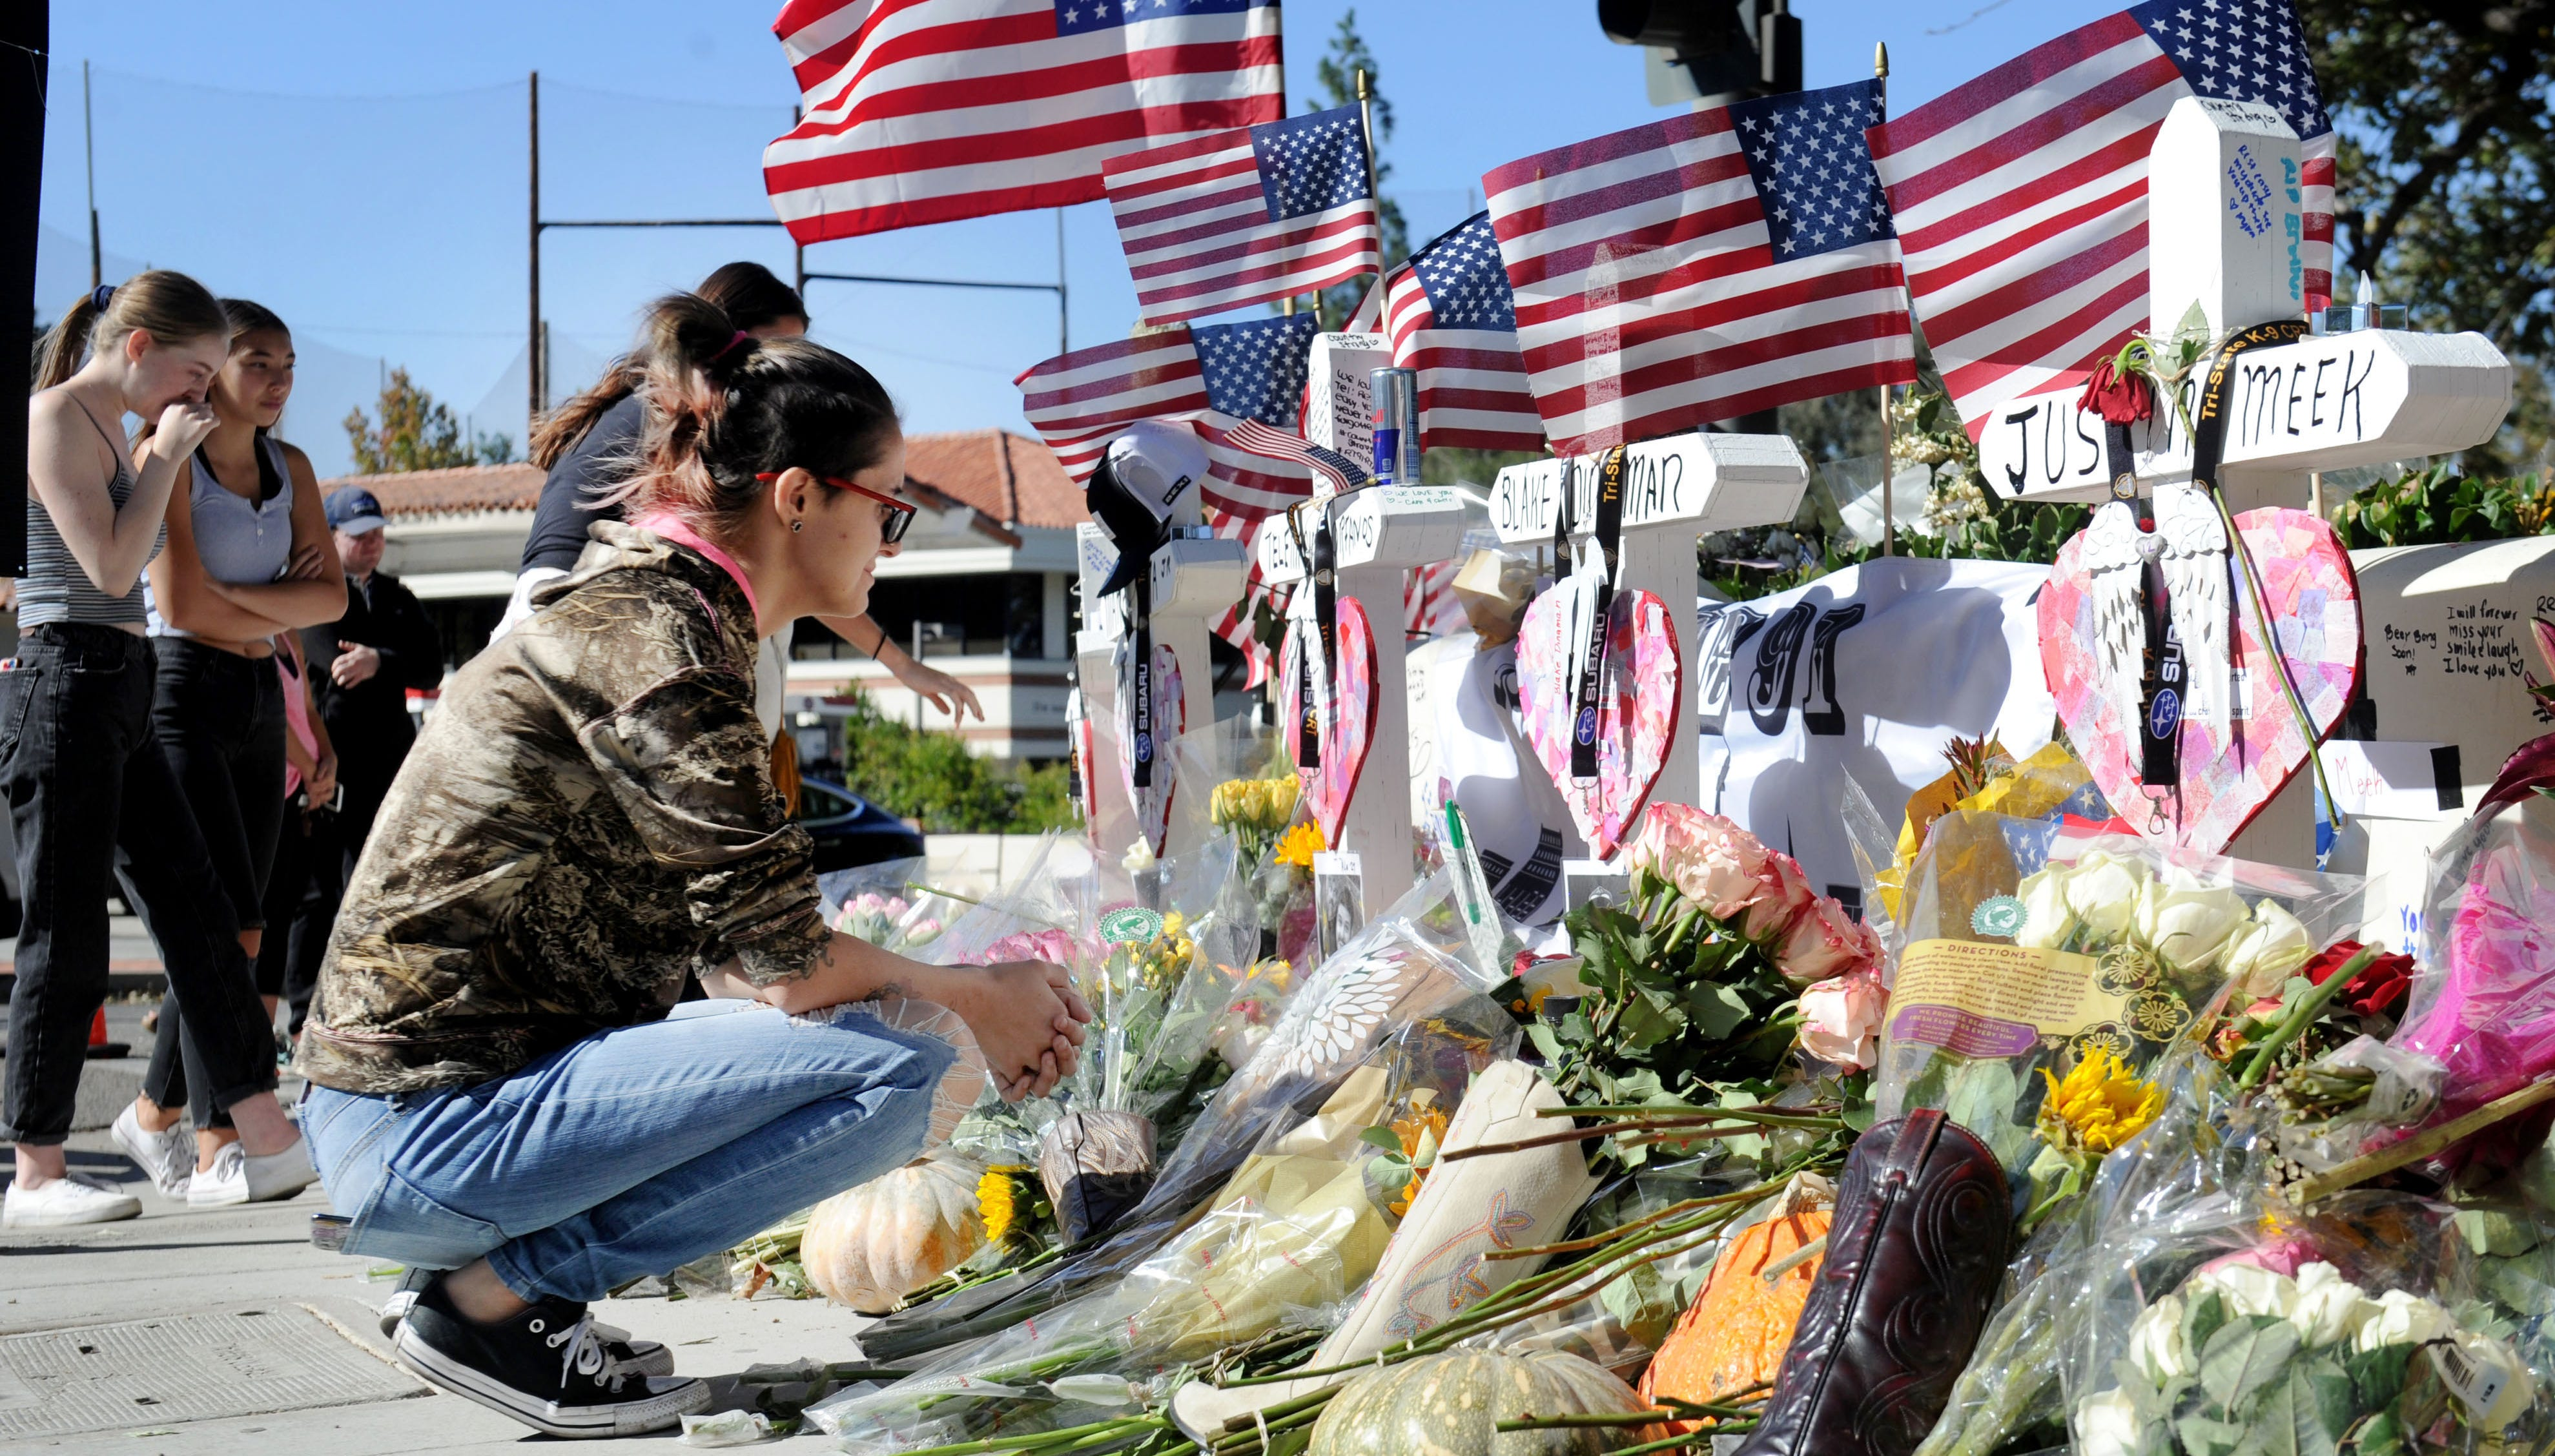 Mariah Piasecki kneels down and cries for her friends at a memorial set up near the Borderline Bar & Grill in Thousand Oaks. Twelve people were killed in a shooting Wednesday night at the bar.